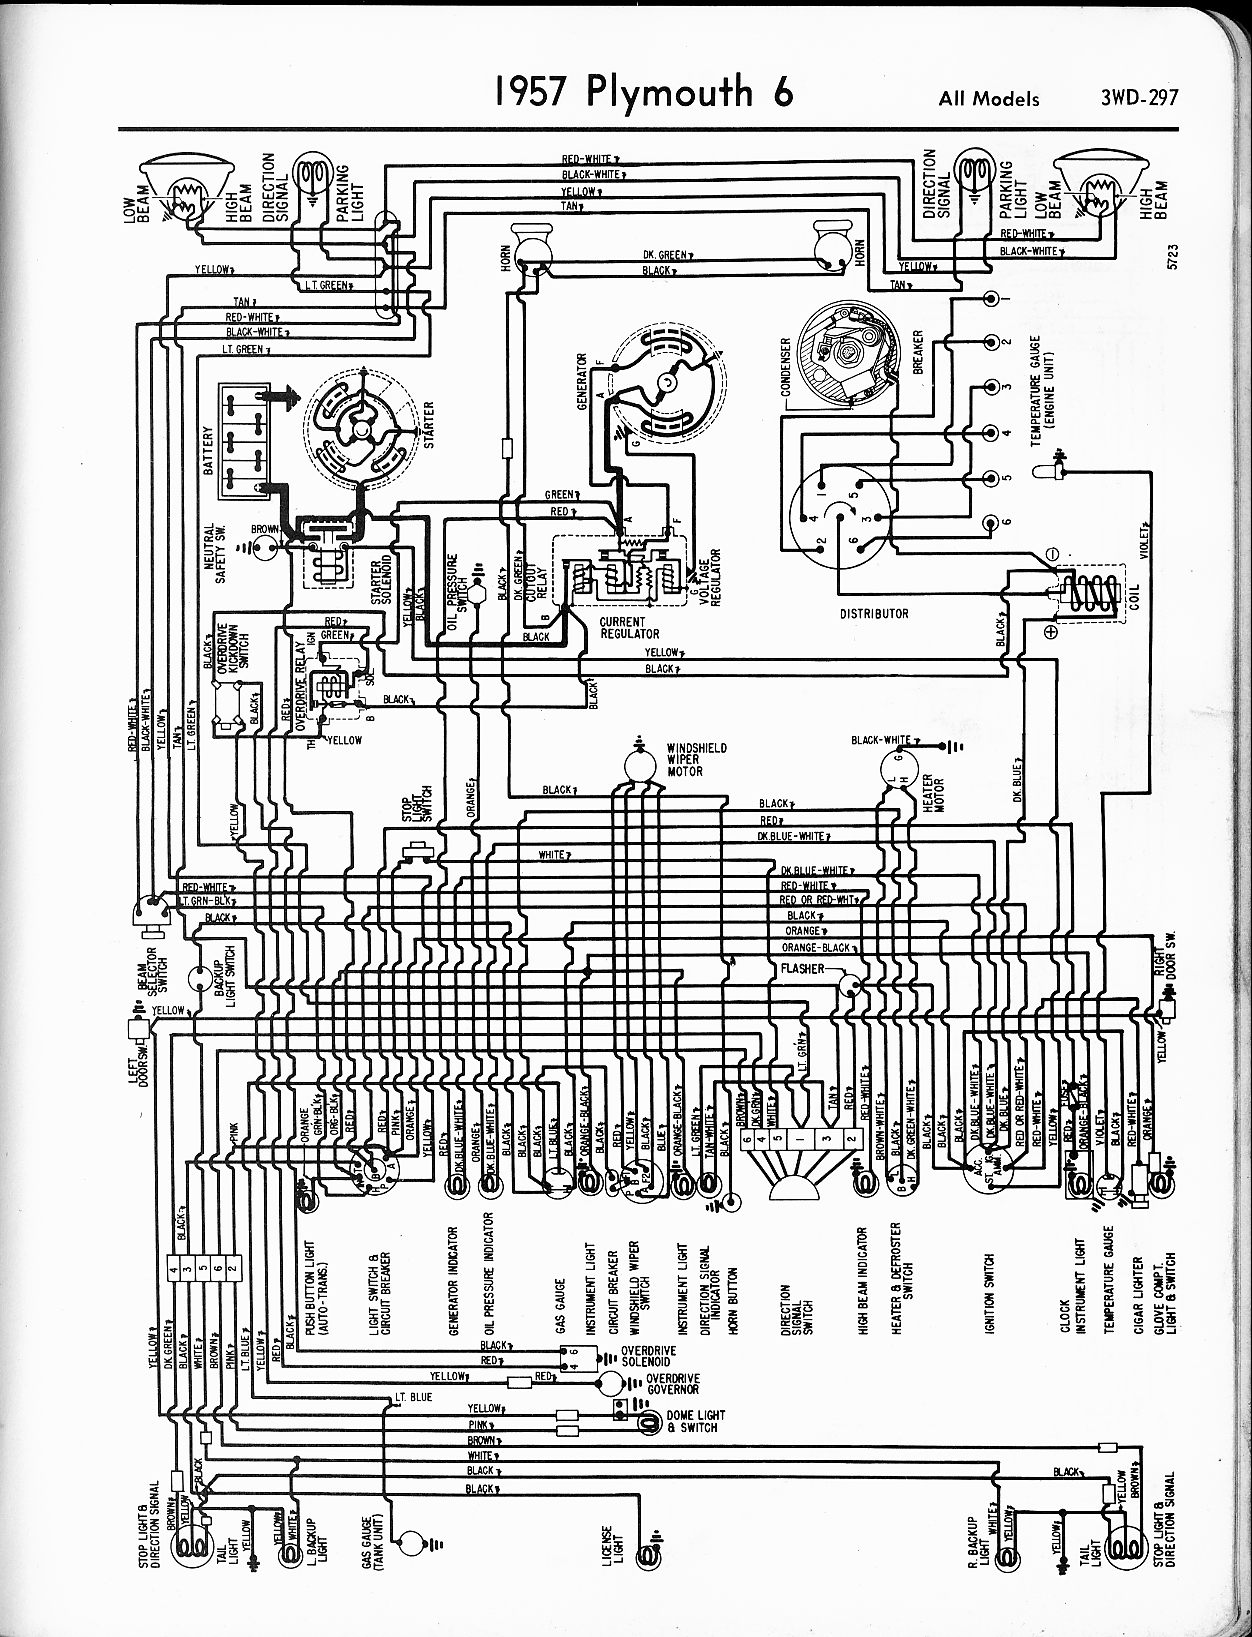 1976 Plymouth Ignition Wiring Diagram Free For You 1966 Ford F100 Engine Picture 1956 1965 The Old Car Manual Project Rh Oldcarmanualproject Com Switch Chevy